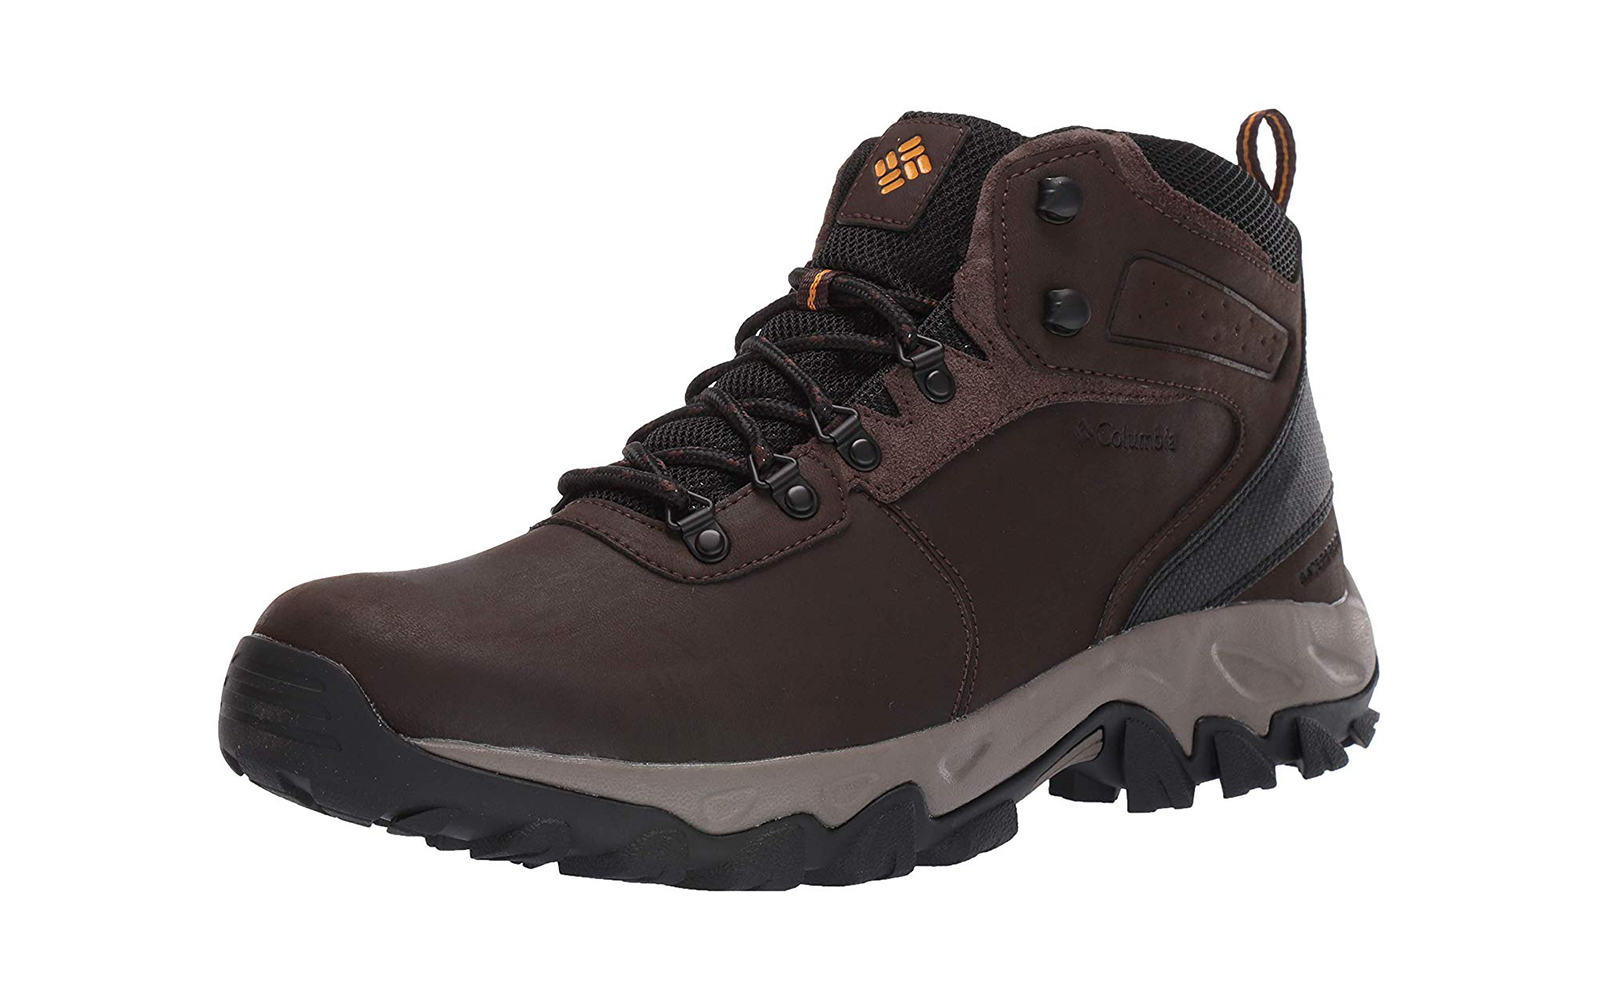 afeaf427f89 The 14 Best Hiking Shoes and Boots, According to Reviews | Travel + ...